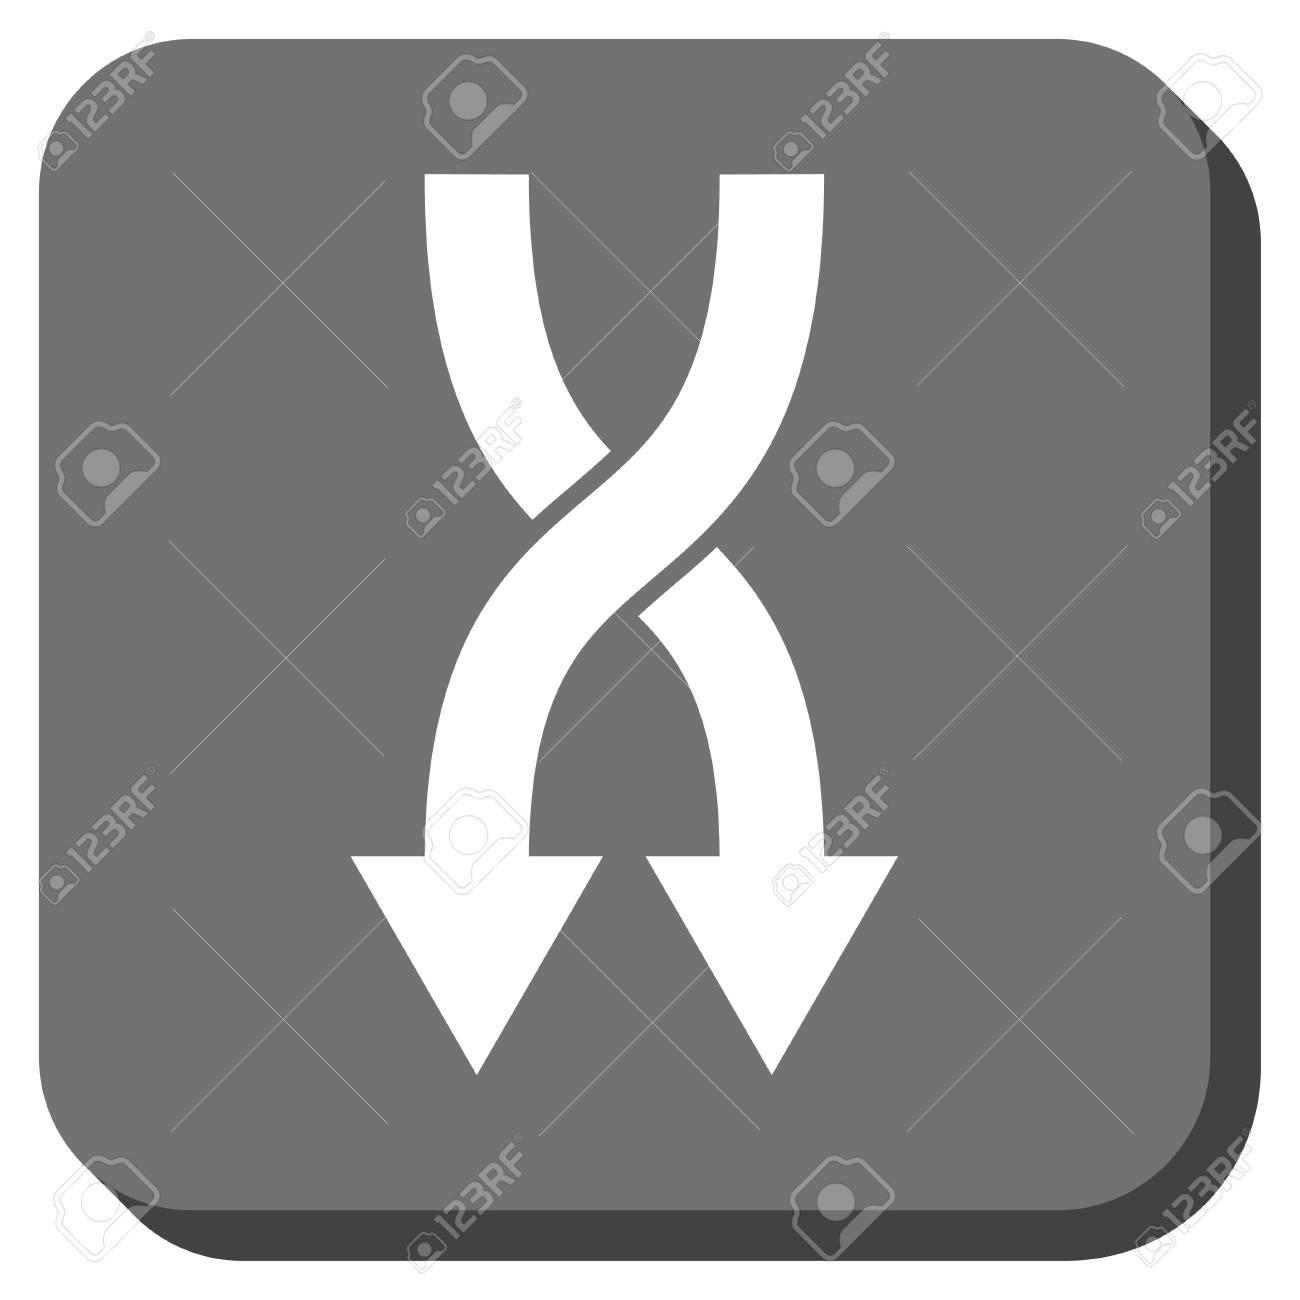 Shuffle Arrows Down Glyph Icon Image Style Is A Flat Icon Symbol